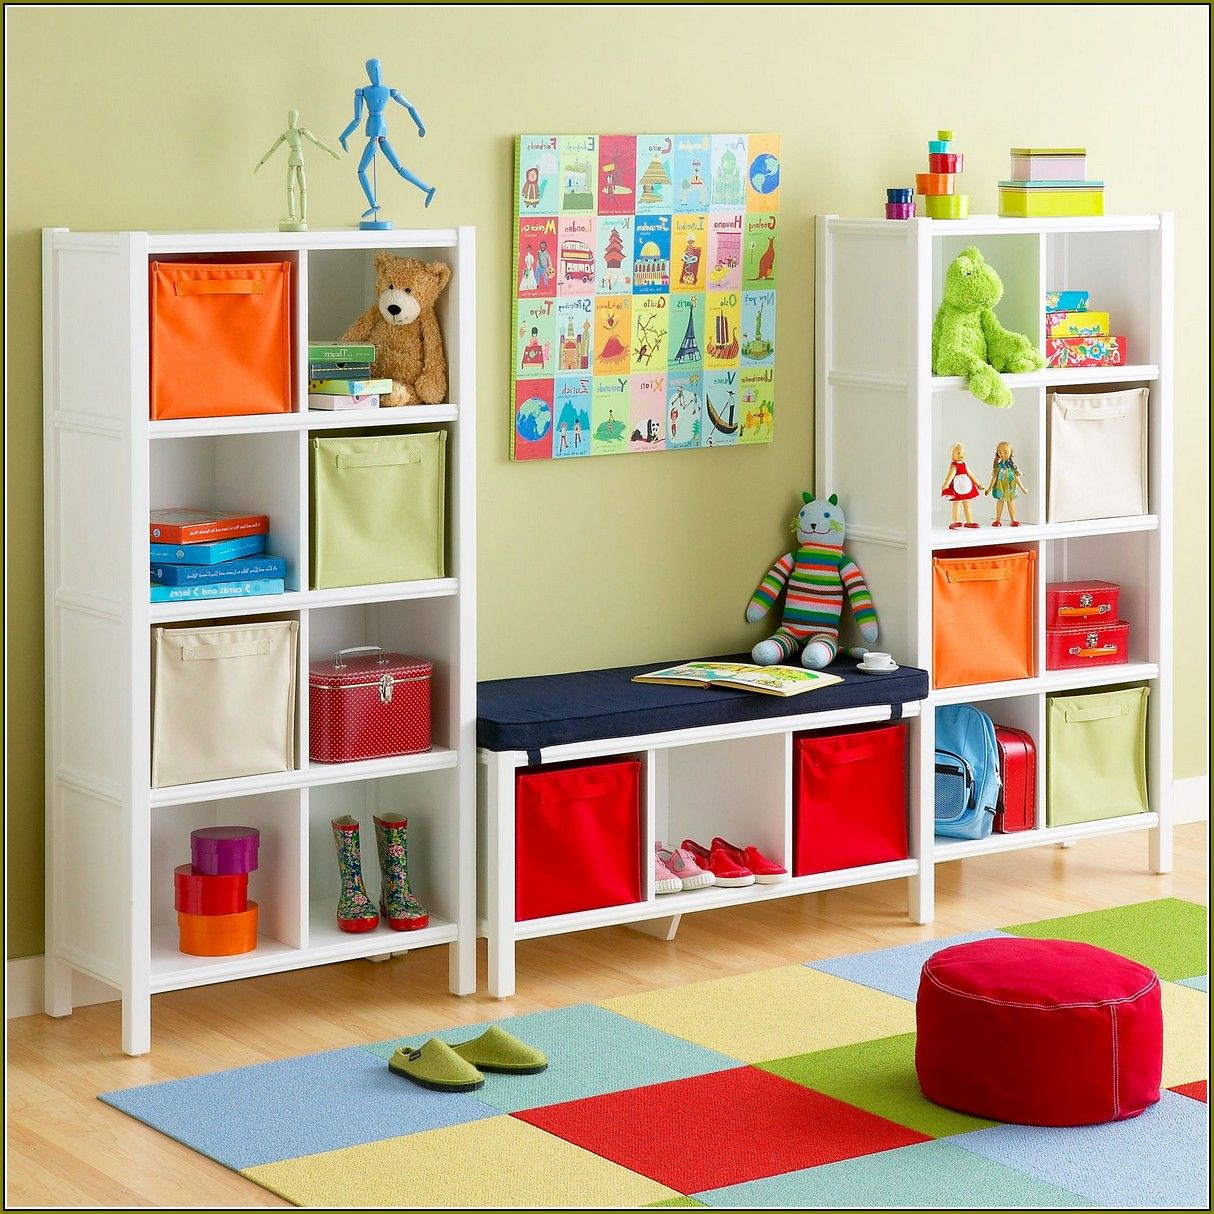 Image Result For Toy Cabinets Kids Bedroom Storage Small Kids